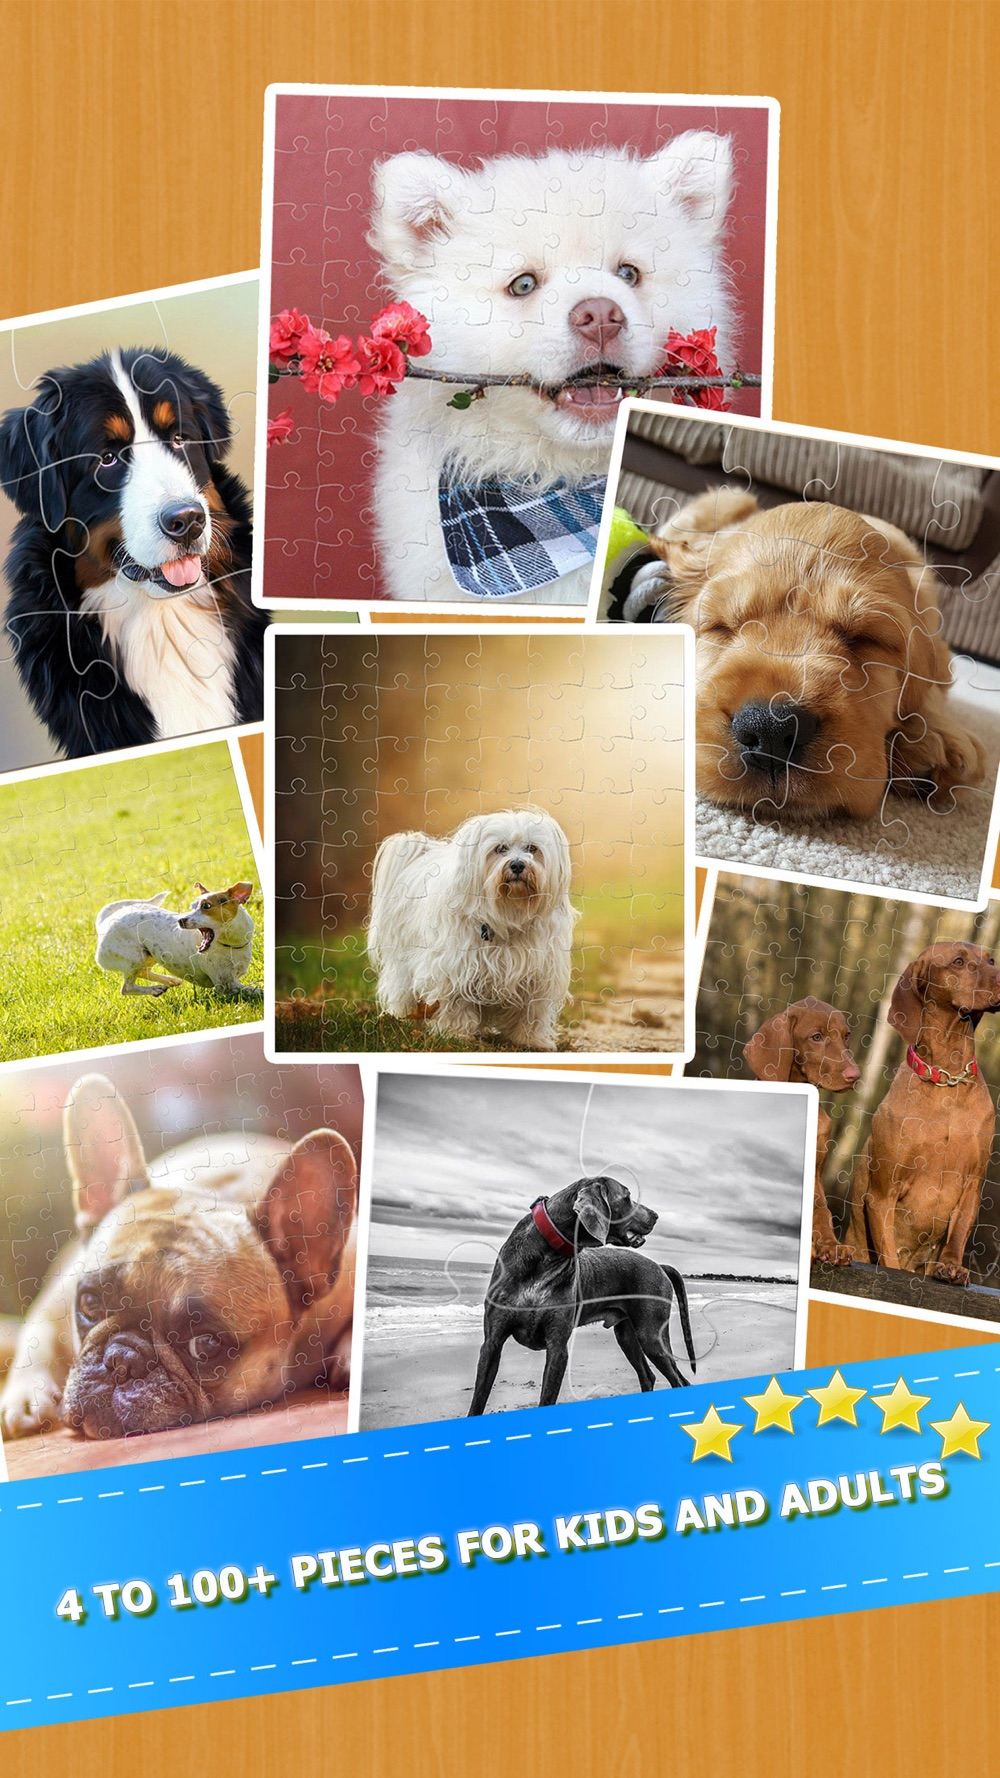 Hack tool for Cute Puppy Dogs Jigsaw Puzzles Games For Adults